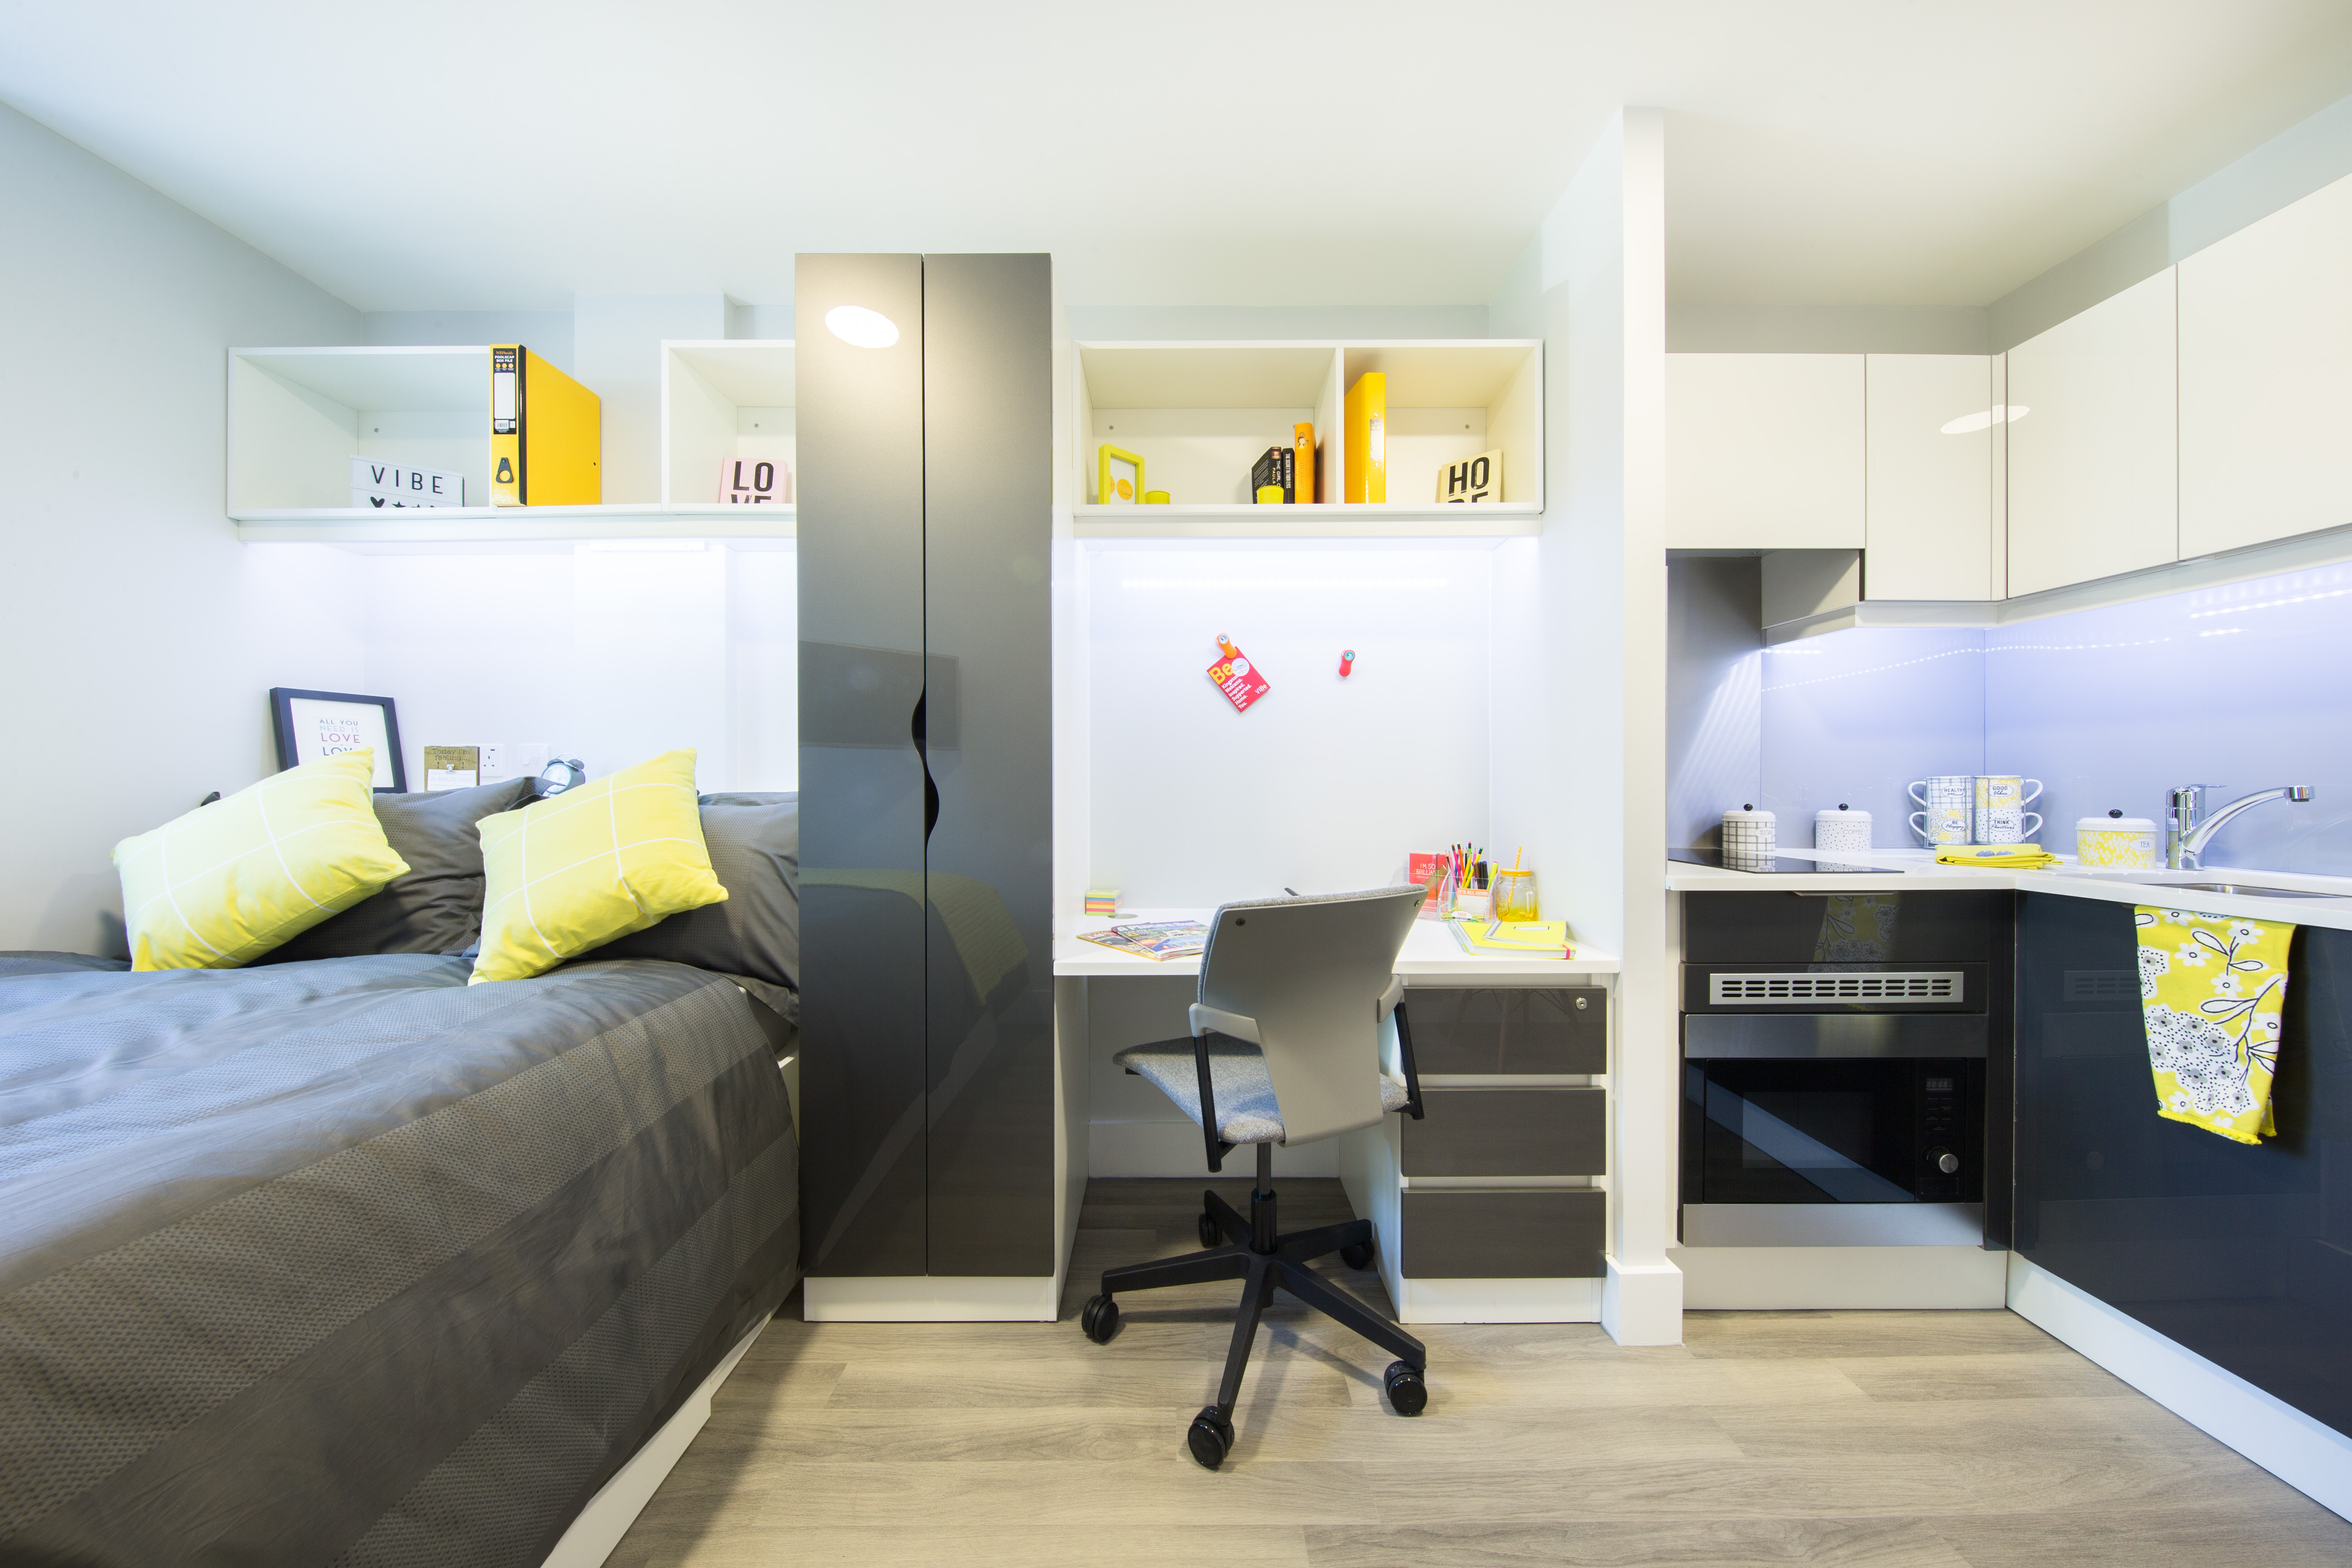 ViBe Student Living Student Accommodation London ...